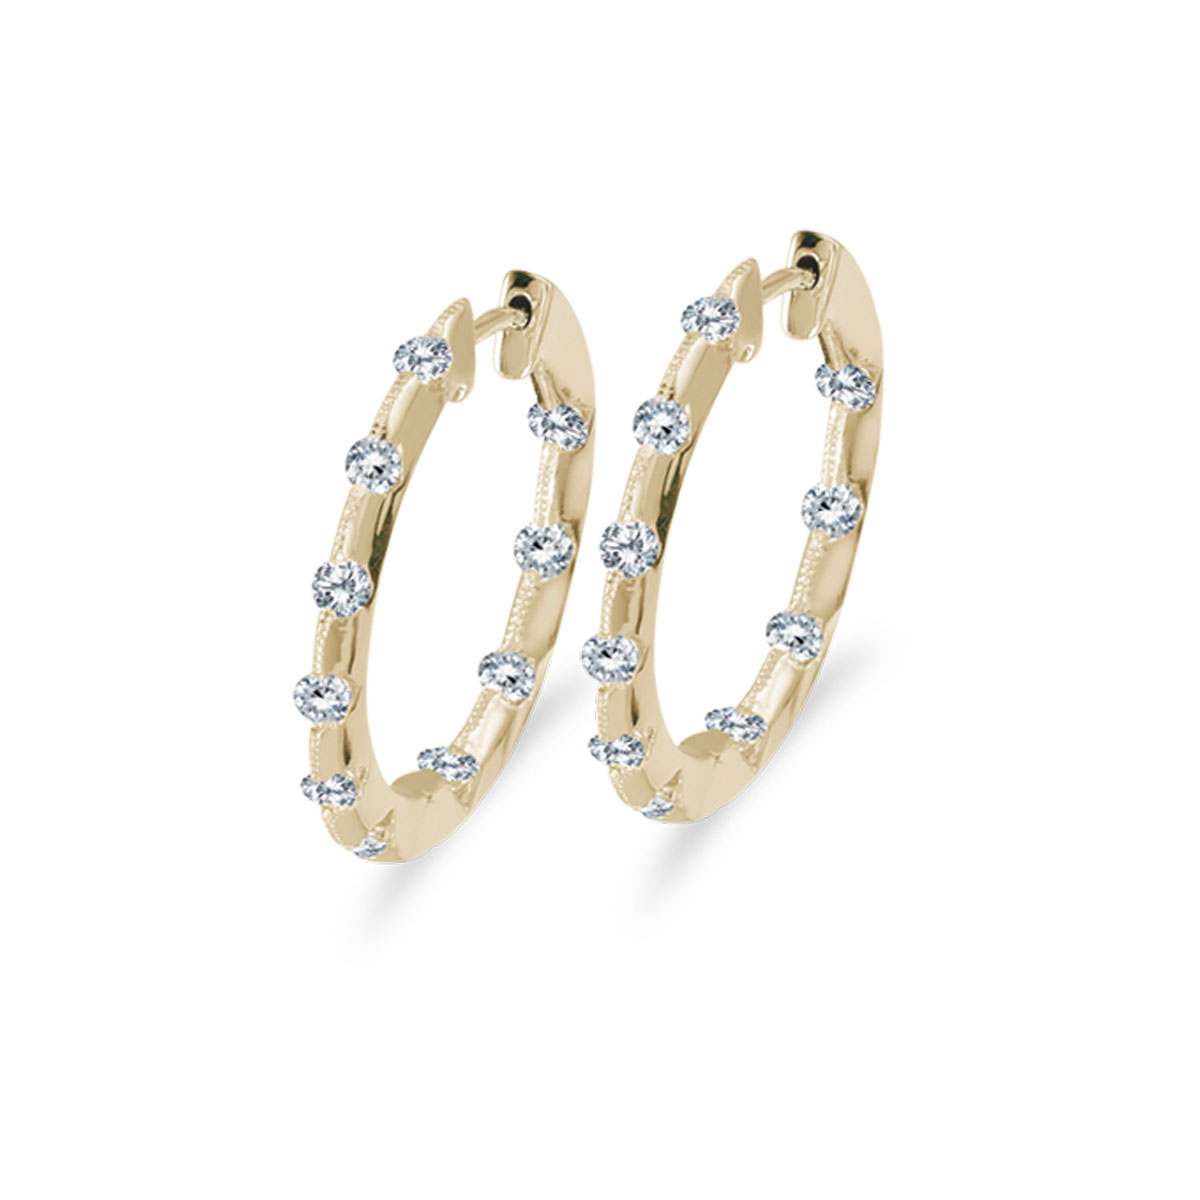 19 mm diamond inside/outside hoop earrings in beautiful 14k yellow gold. The perfect look for day...